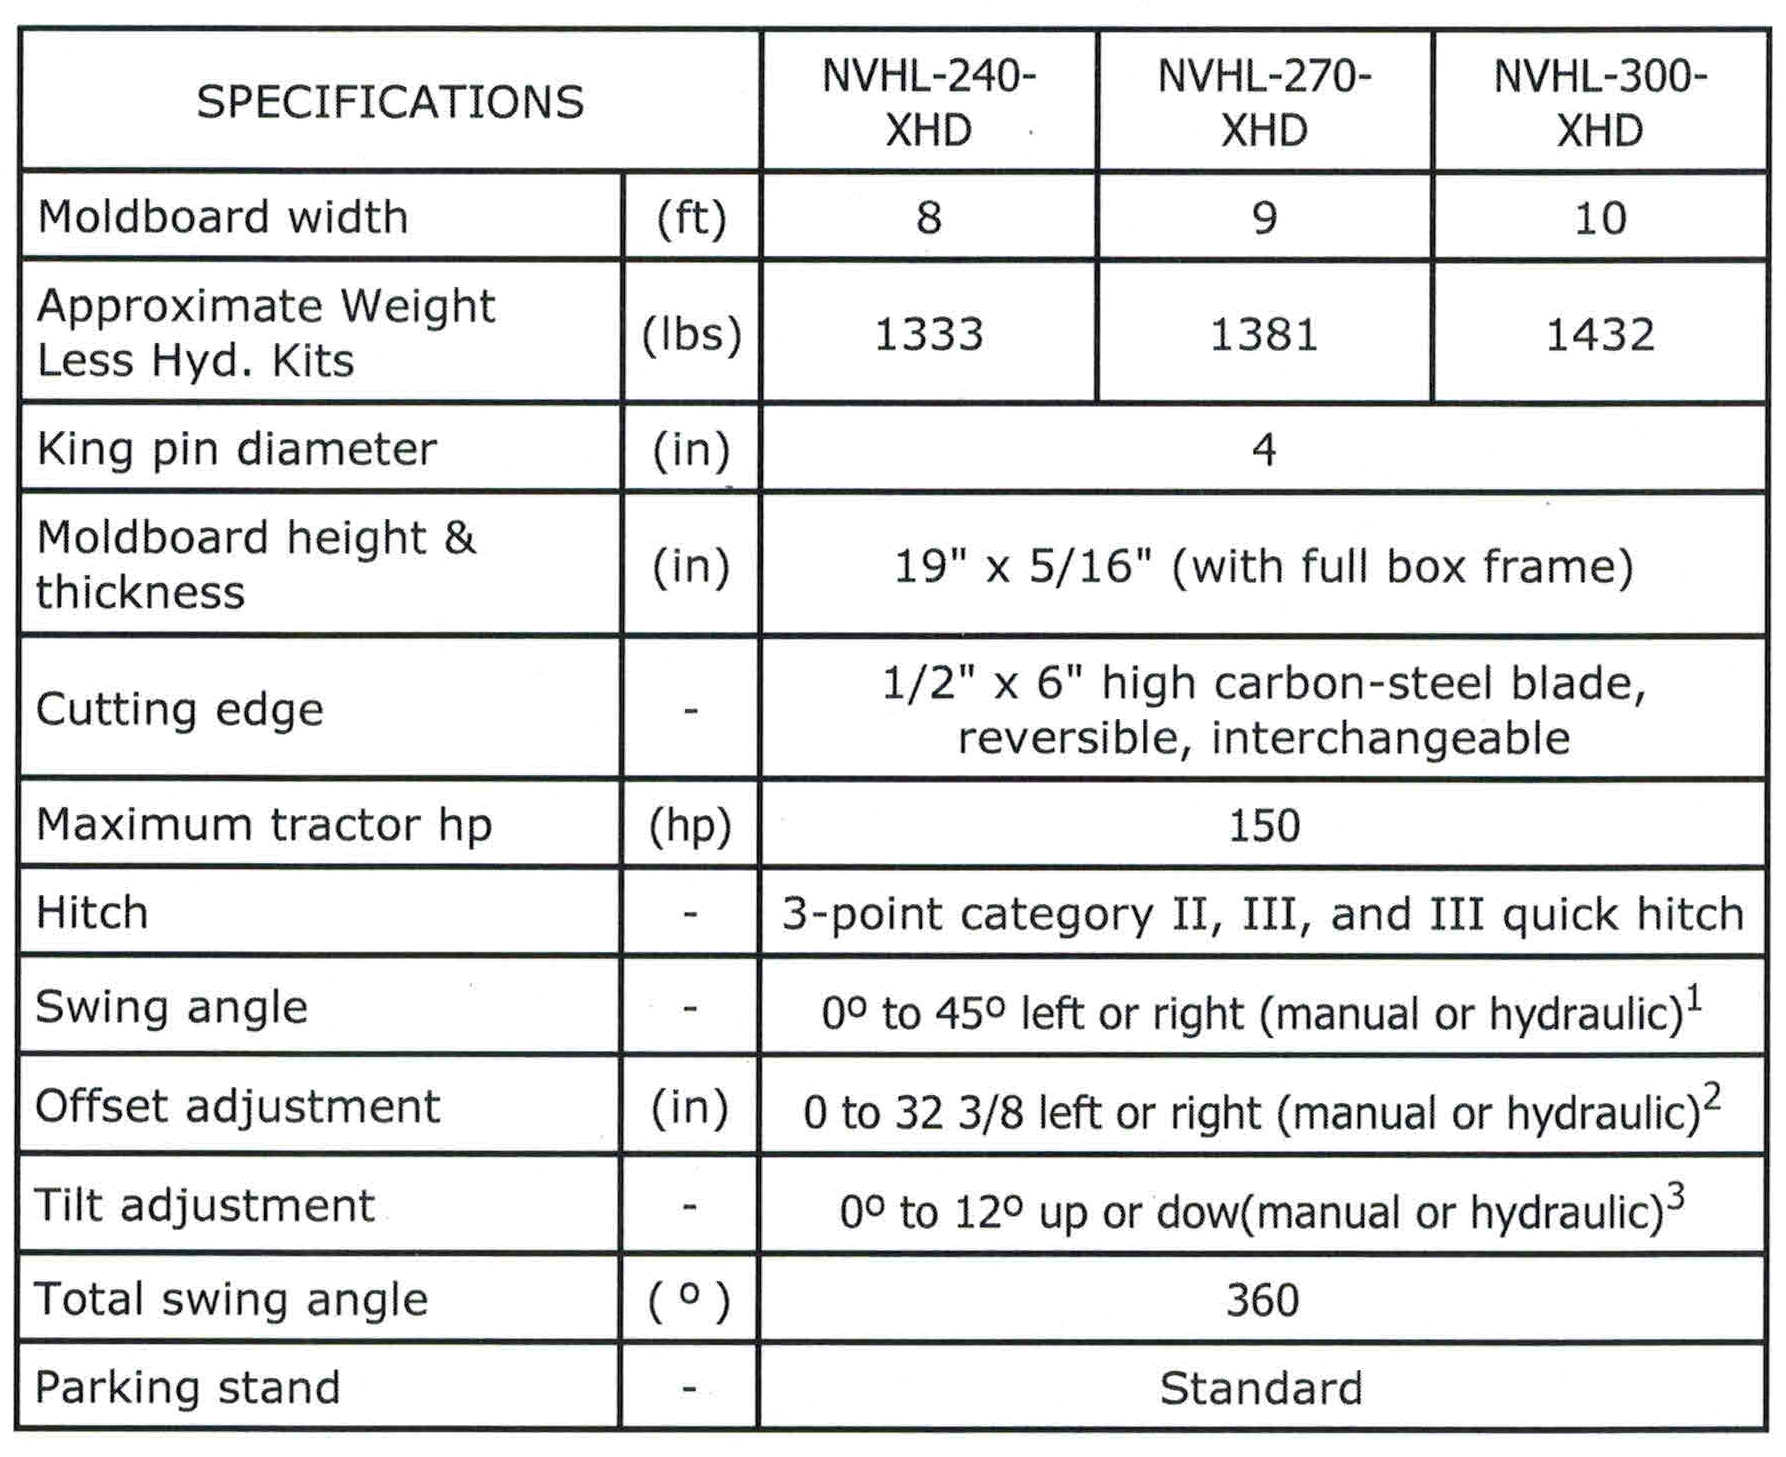 Specifications NVHL-XHD Series Tractor Blades